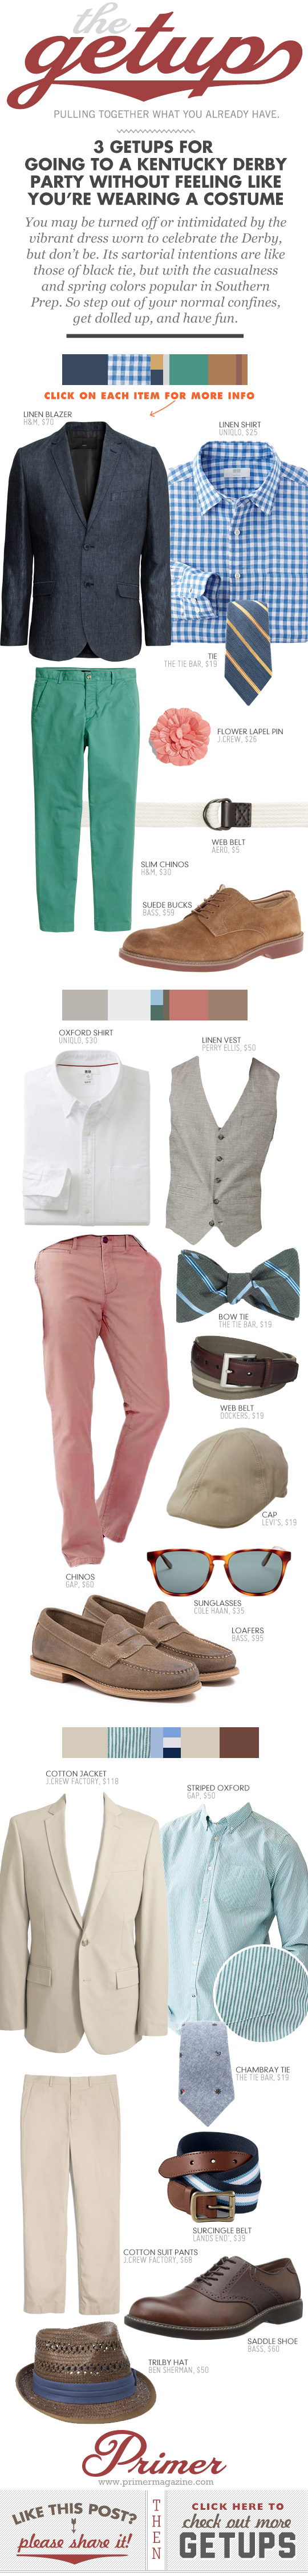 Getup - Infographic featuring 3 outfit ideas for a Kentucy Derby party